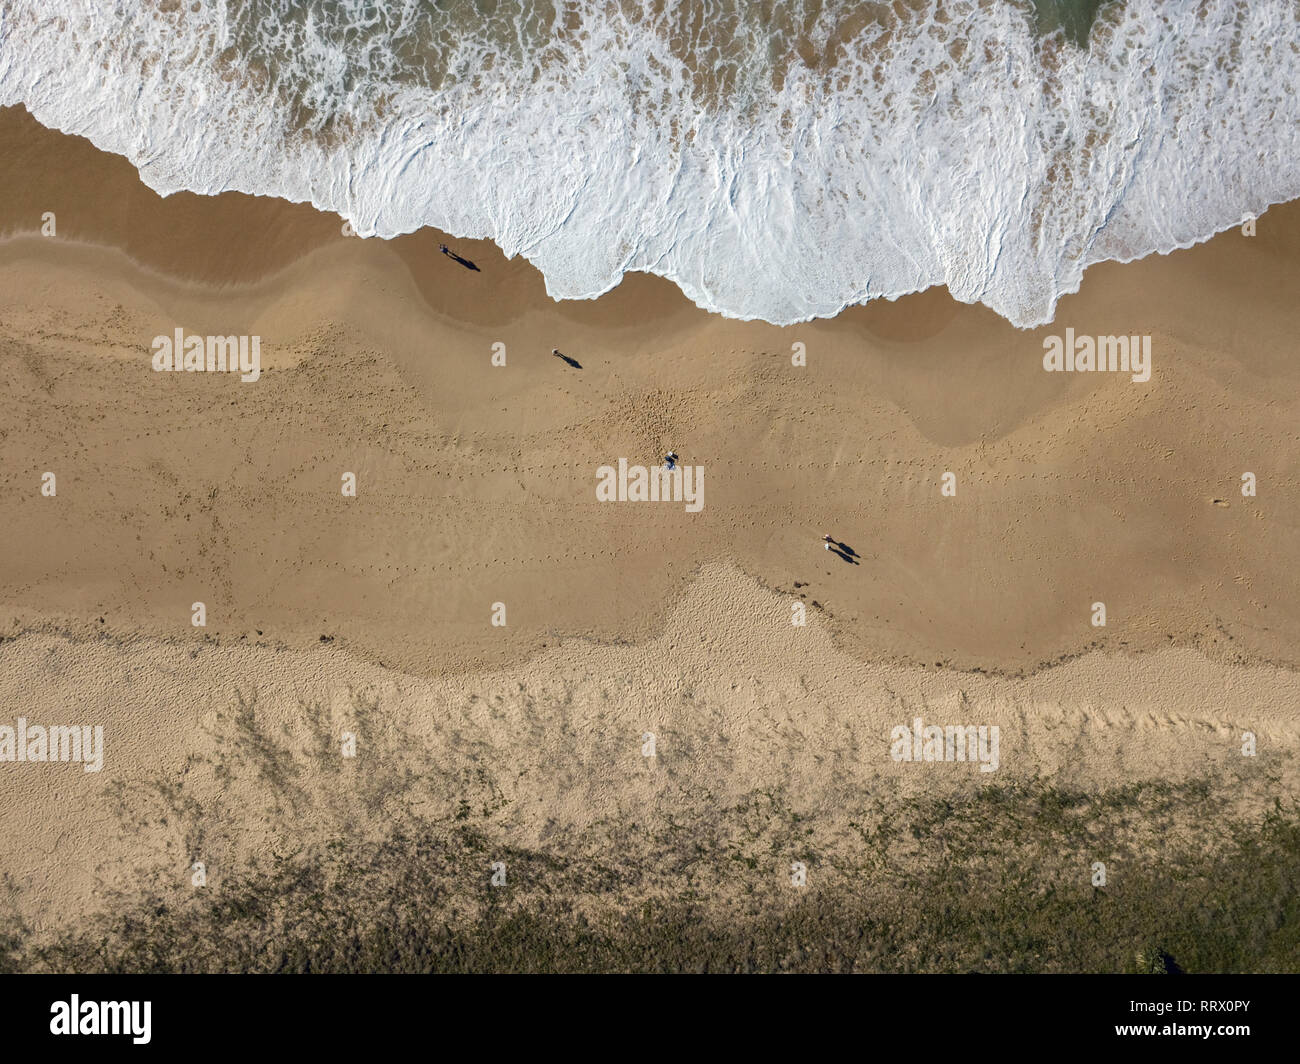 Australian beach and people landscape aerial view on sandy beach with waves and ocean crashing in. Bird's eye view captured with drone. - Stock Image